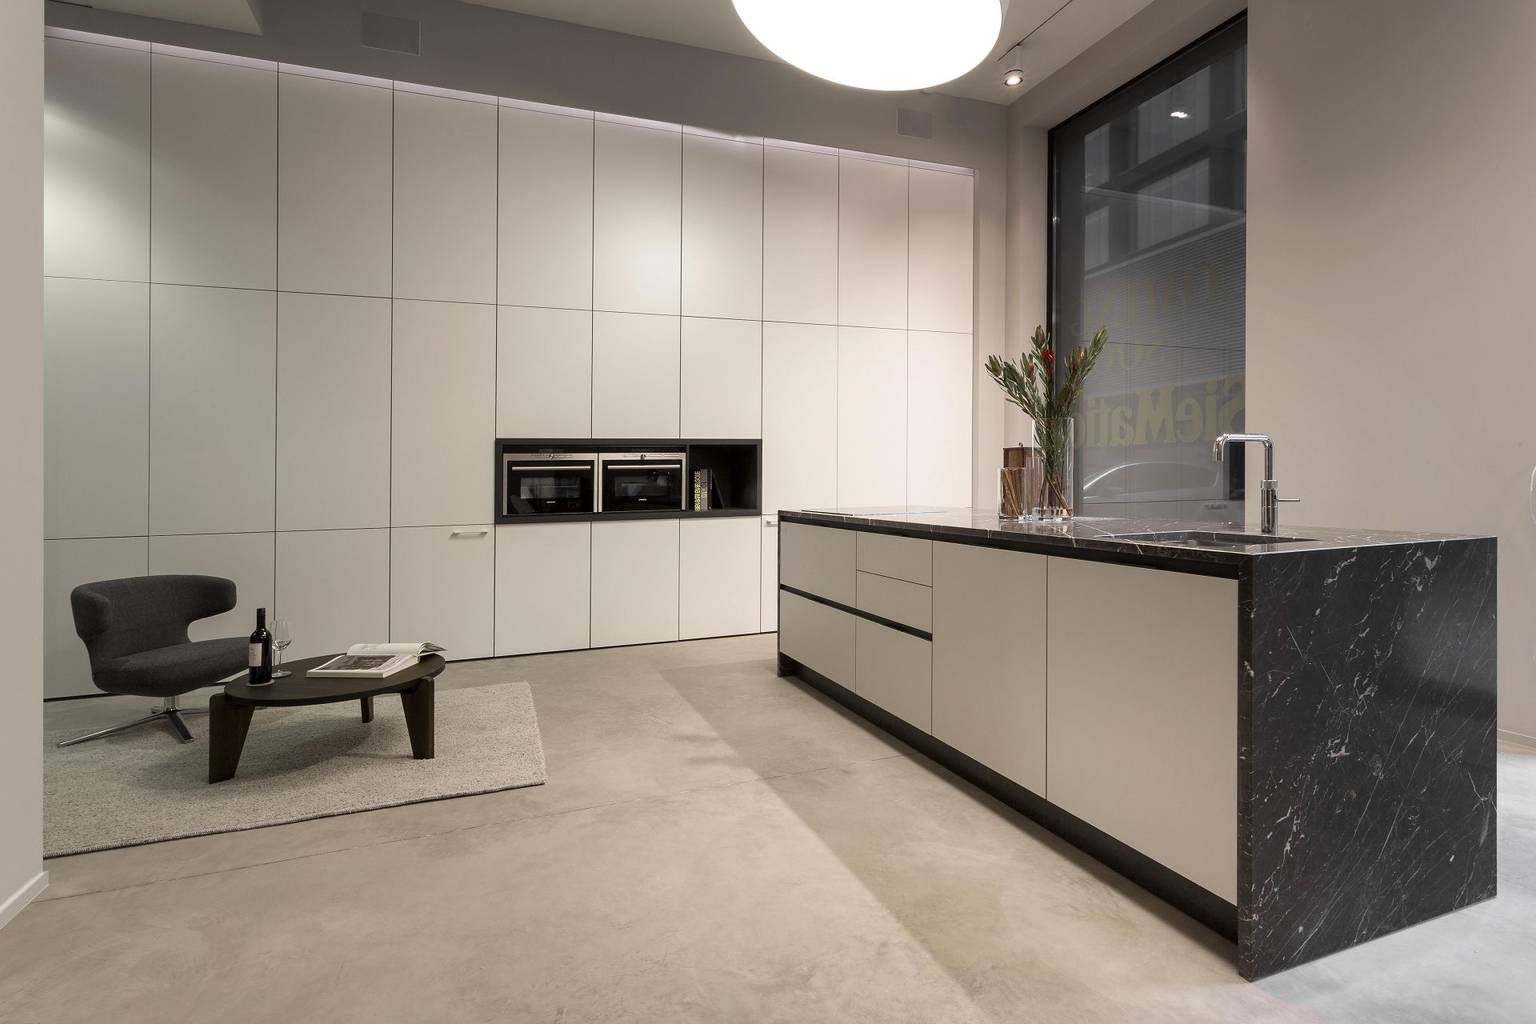 Les showrooms cuisine siematic cuisinistes allemands for Showroom cuisine